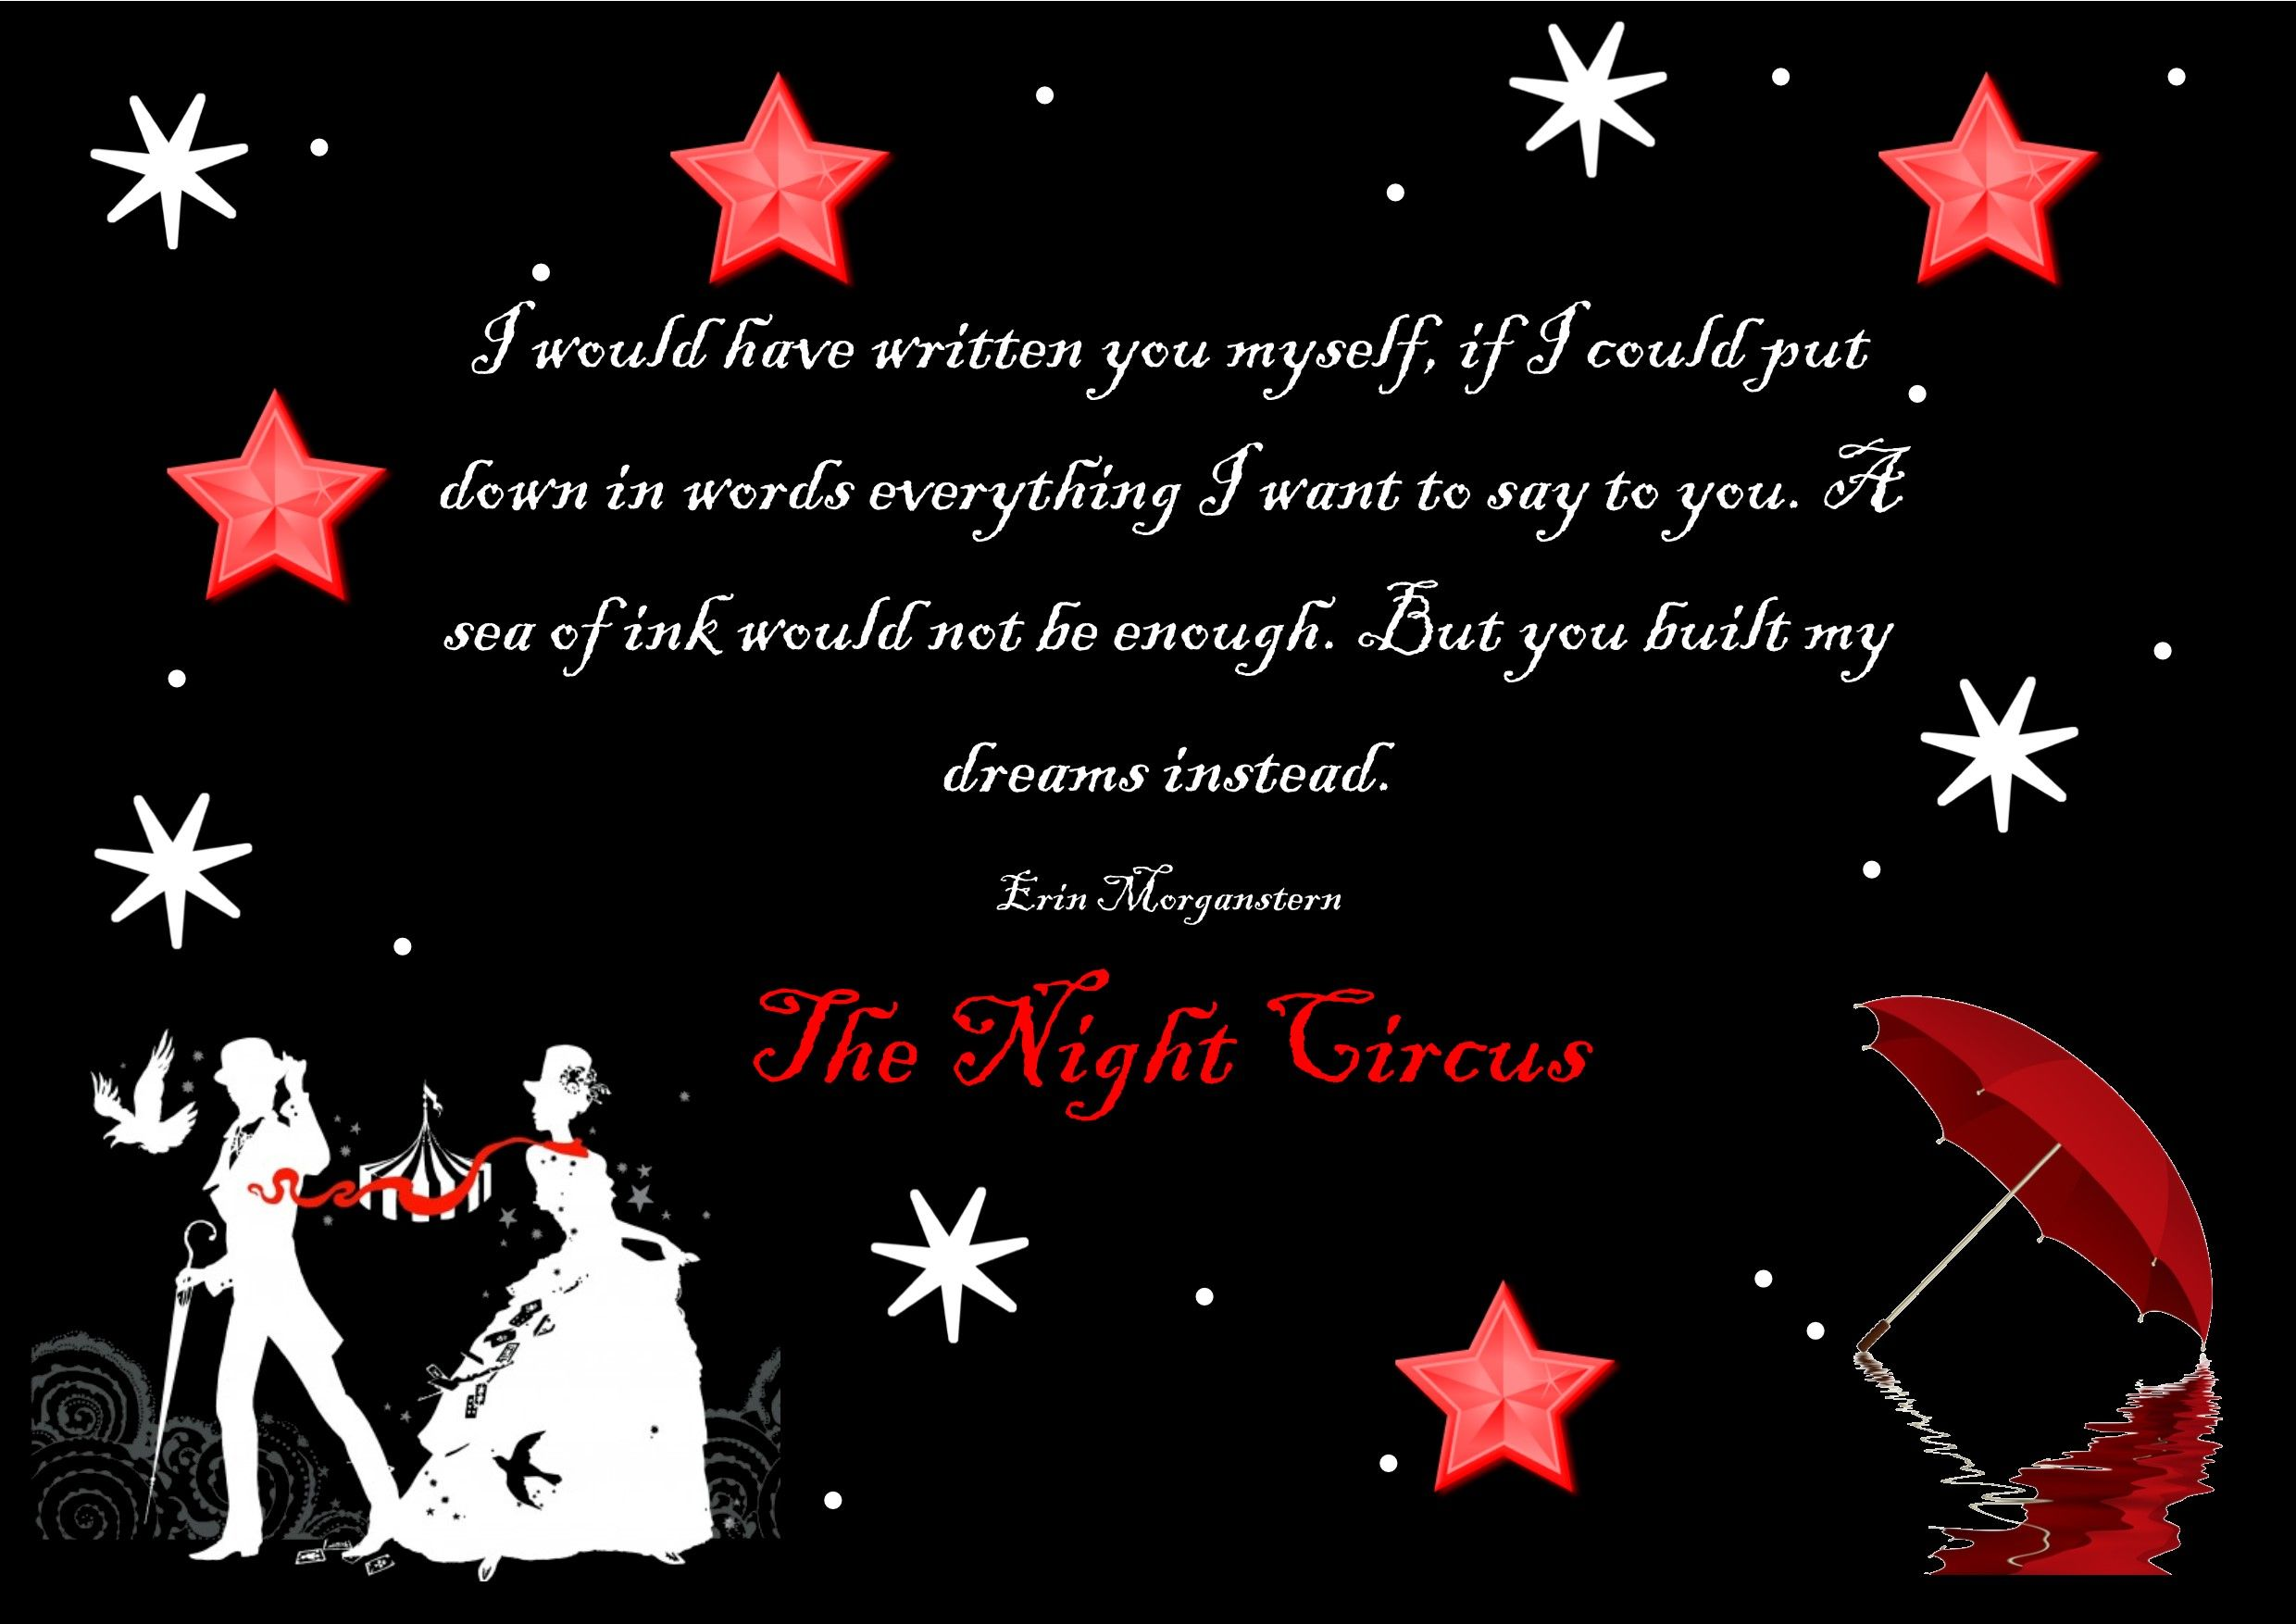 #TheNightCircus